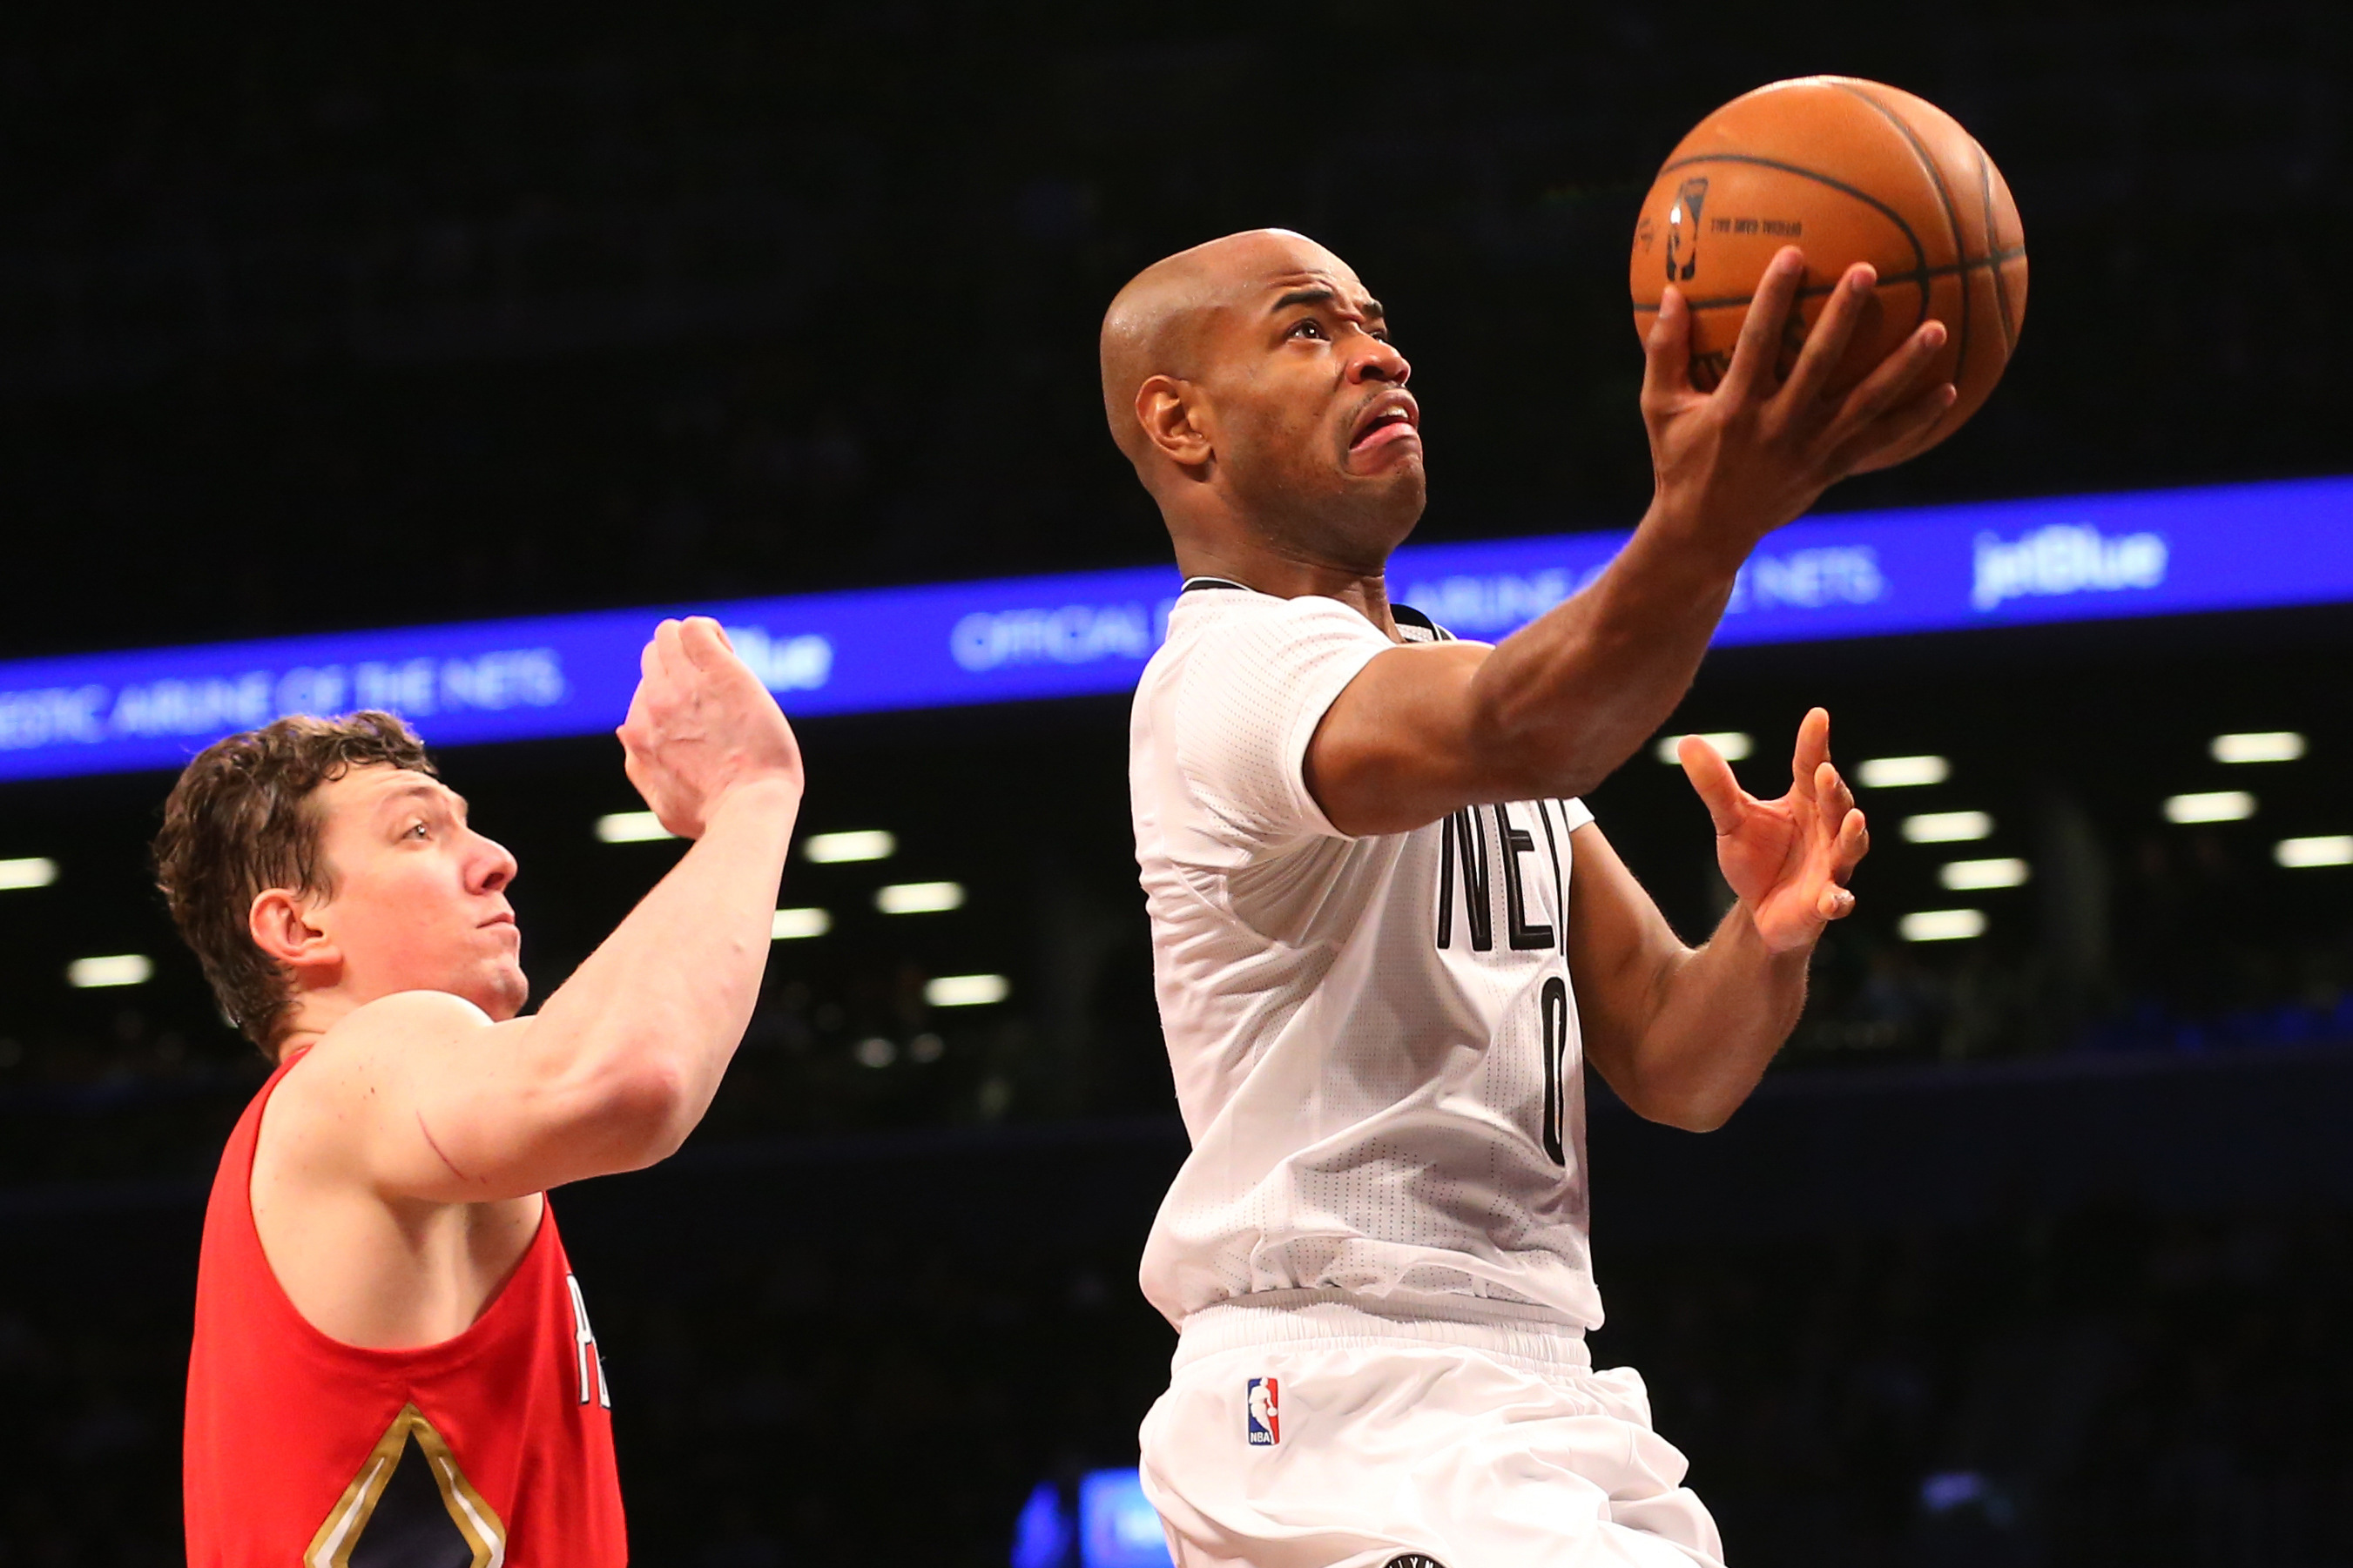 8436439-nba-new-orleans-pelicans-at-brooklyn-nets